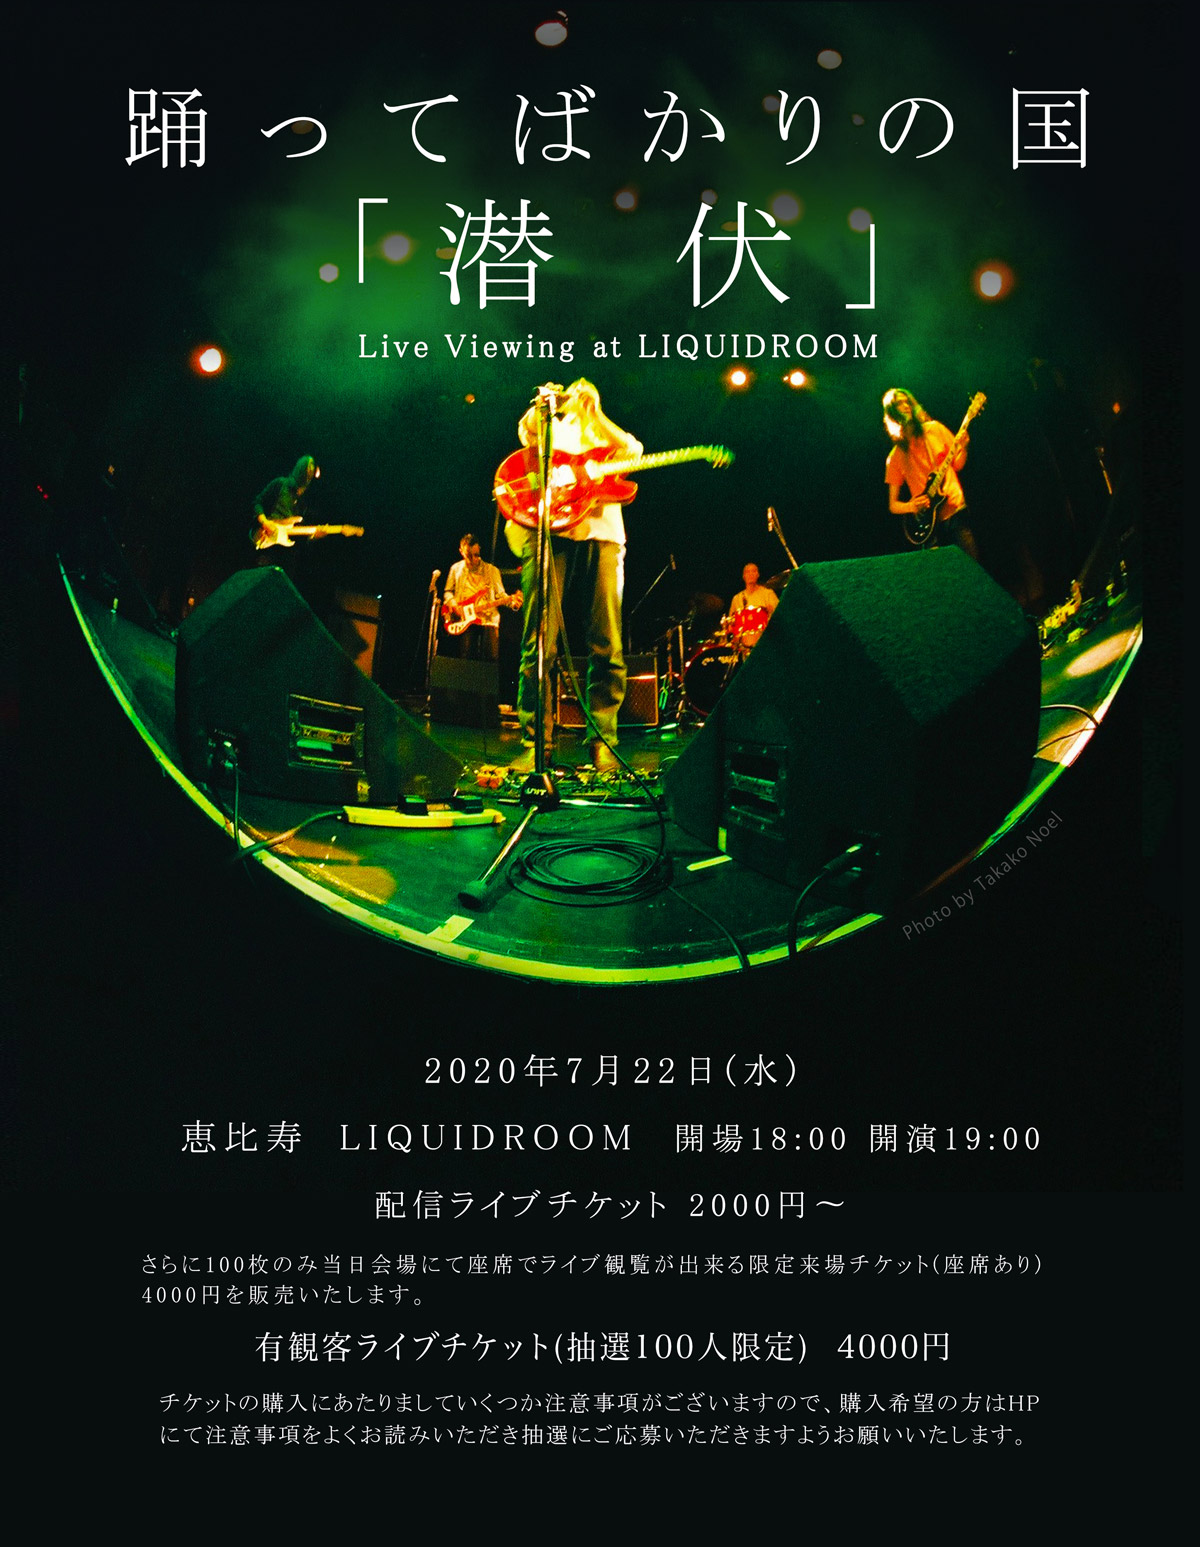 潜伏 Live Viewing at LIQUIDROOM